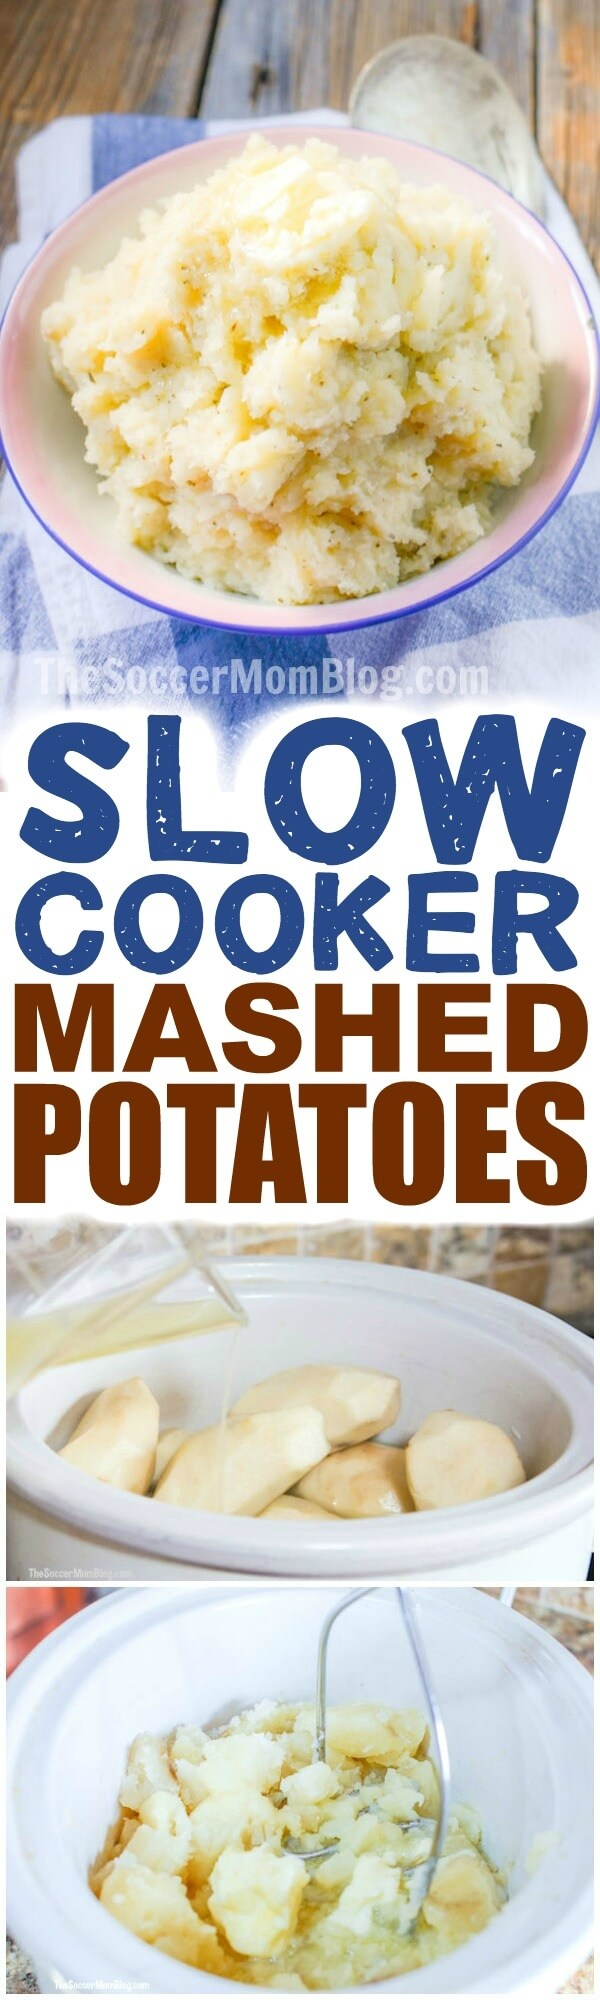 Crockpot Mashed Potatoes are a super easy way to make everyone's favorite holiday side dish!